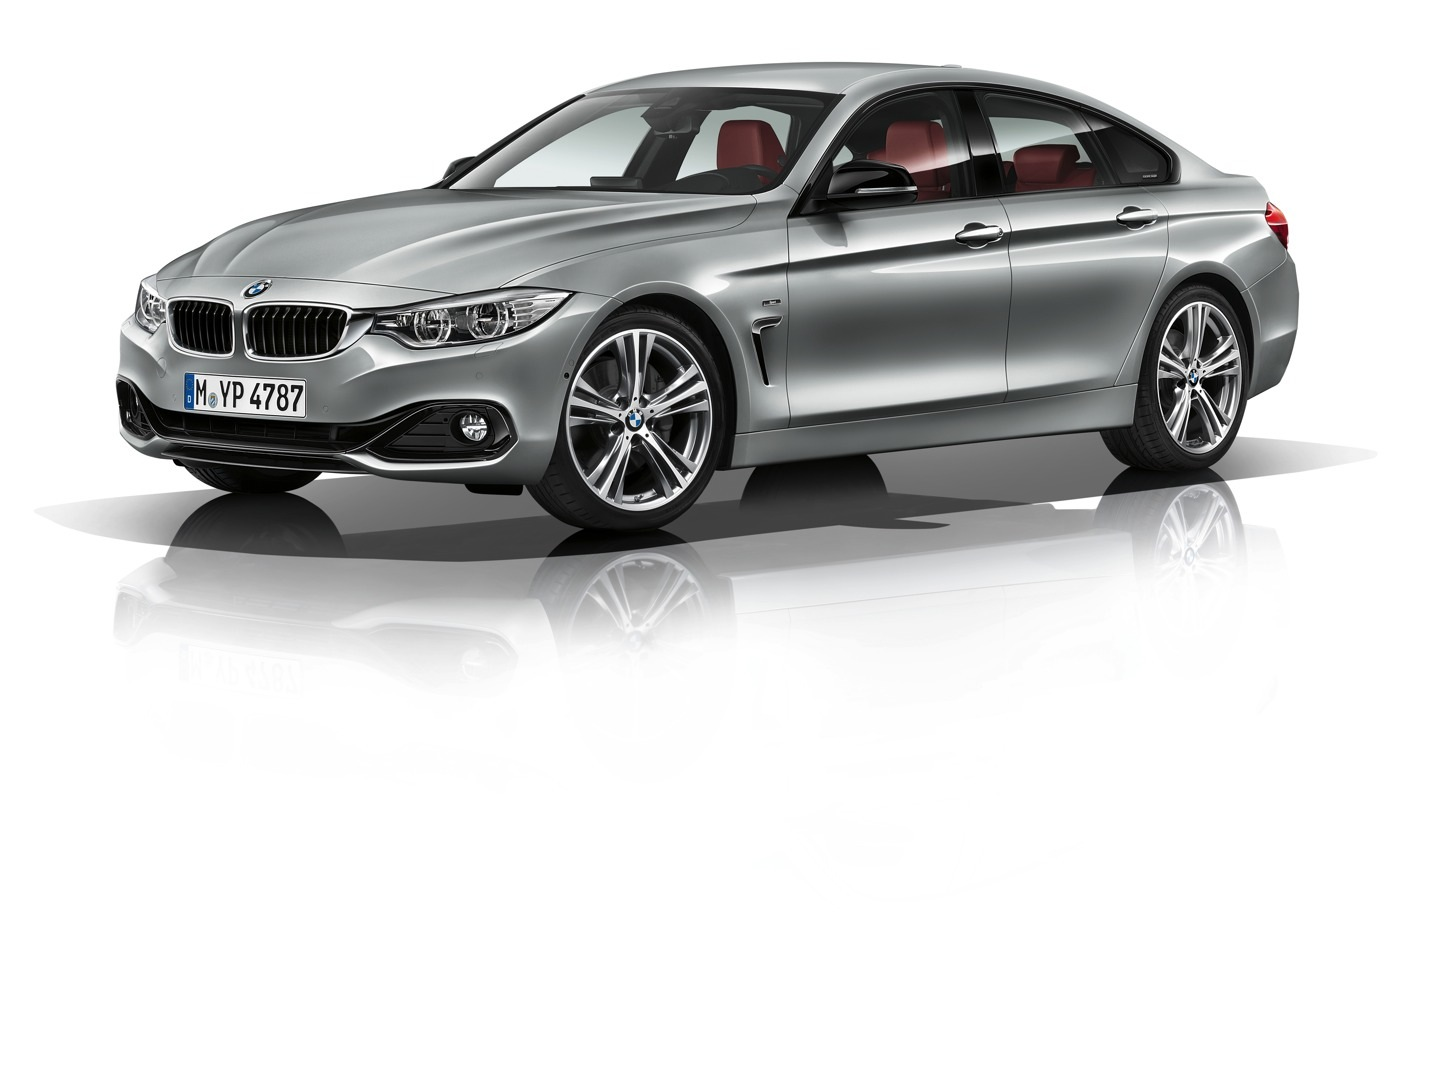 Bmw 4 Series Convertible Auto Boutique bmw-4-series-gran-coupe-officially-unveiled-photo-gallery_4.jpg